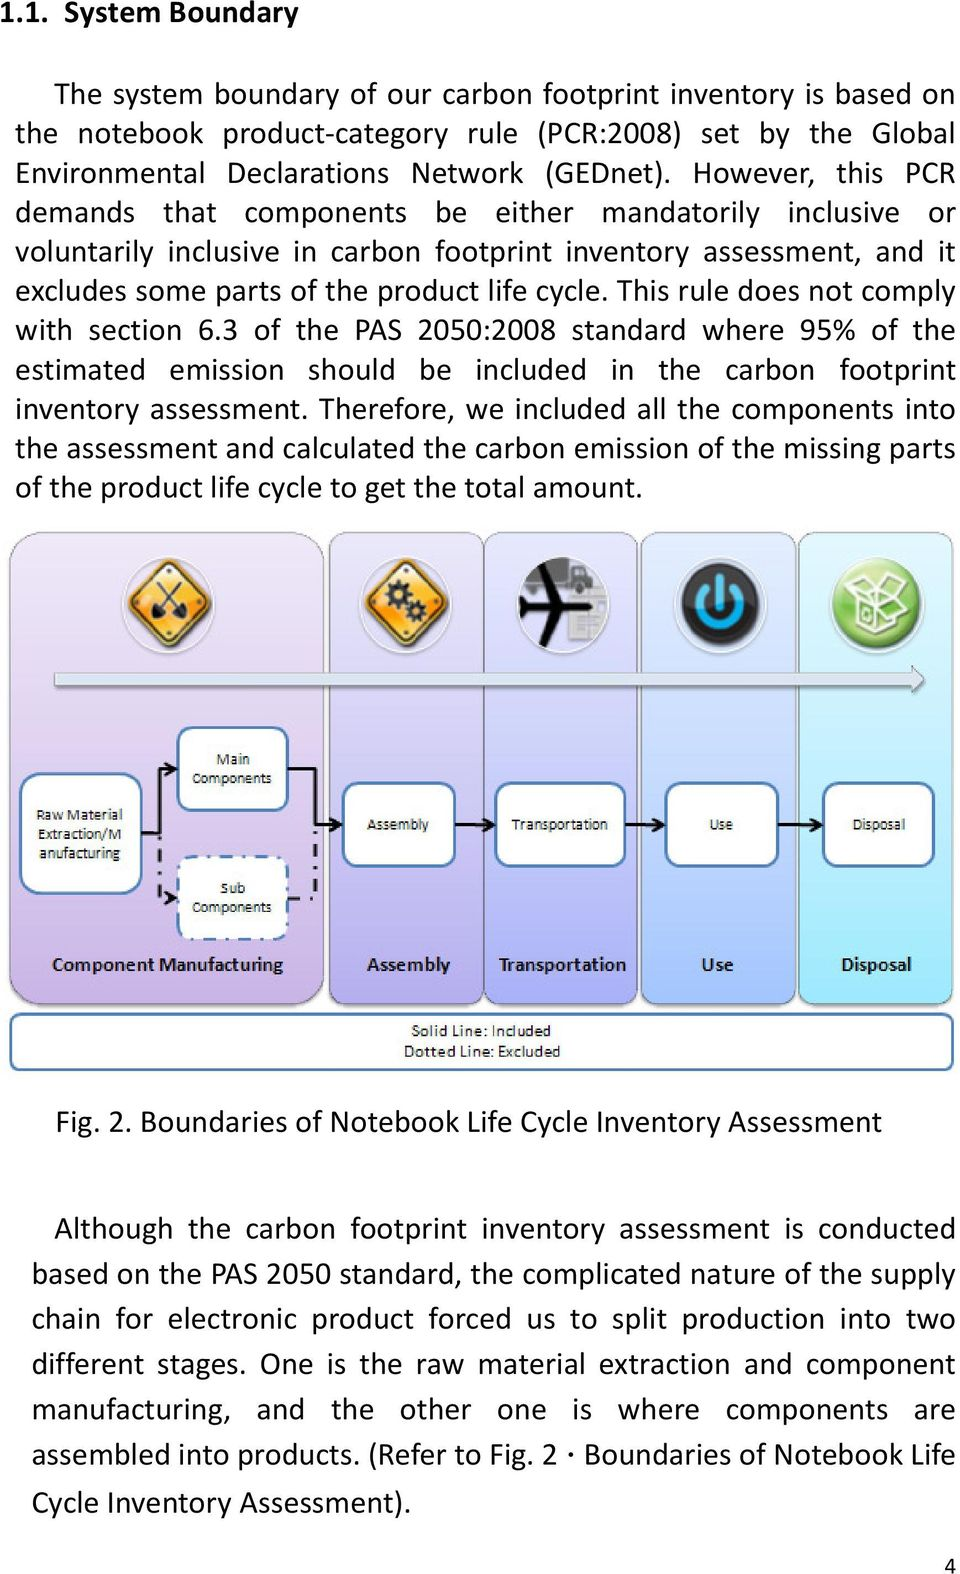 This rule does not comply with section 6.3 of the PAS 2050:2008 standard where 95% of the estimated emission should be included in the carbon footprint inventory assessment.